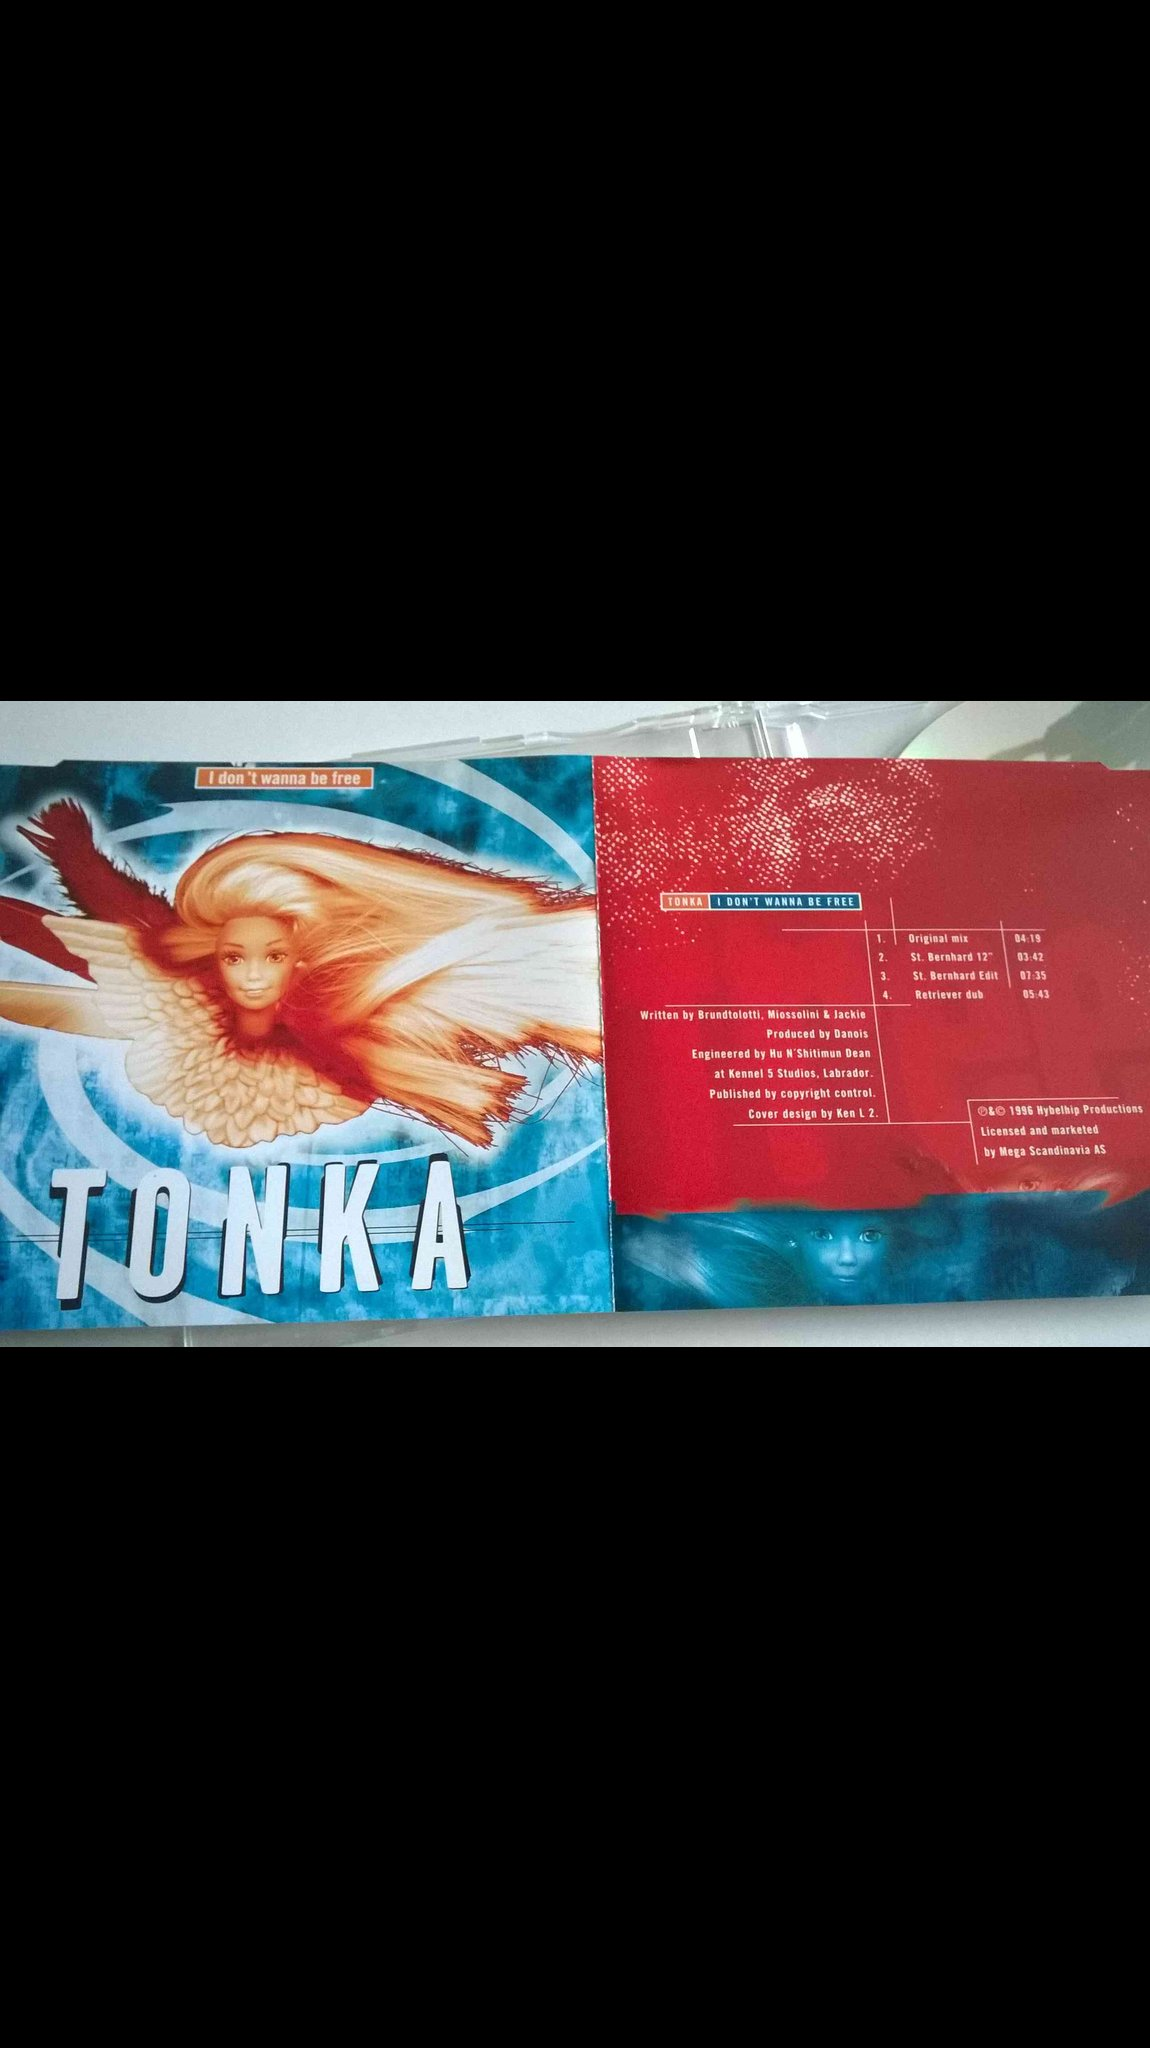 Tonka - I Don't Wanna Be Free, CD, Maxi-Single